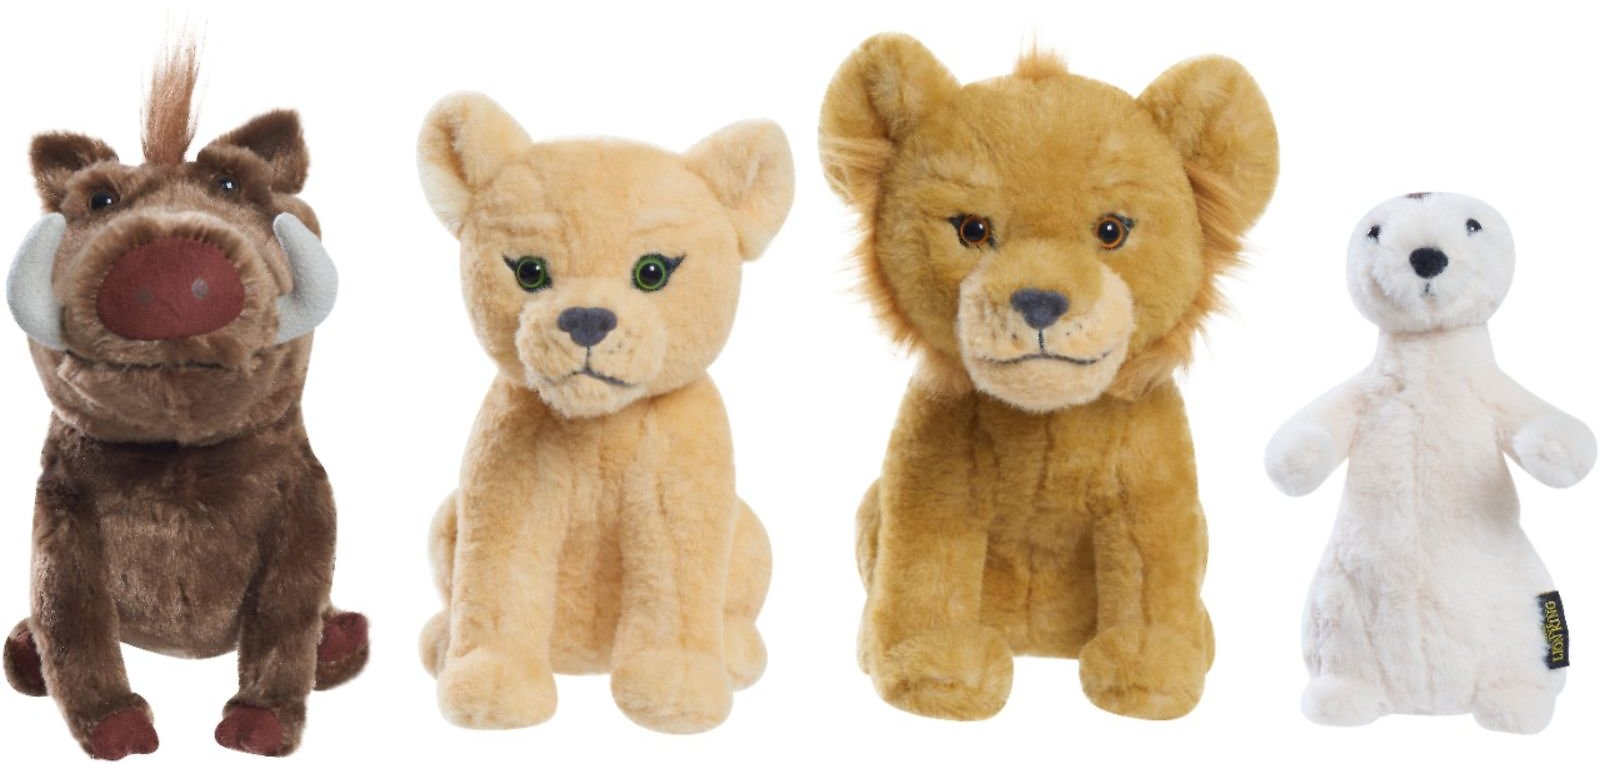 Disney The Lion King Fabric Plush Toy